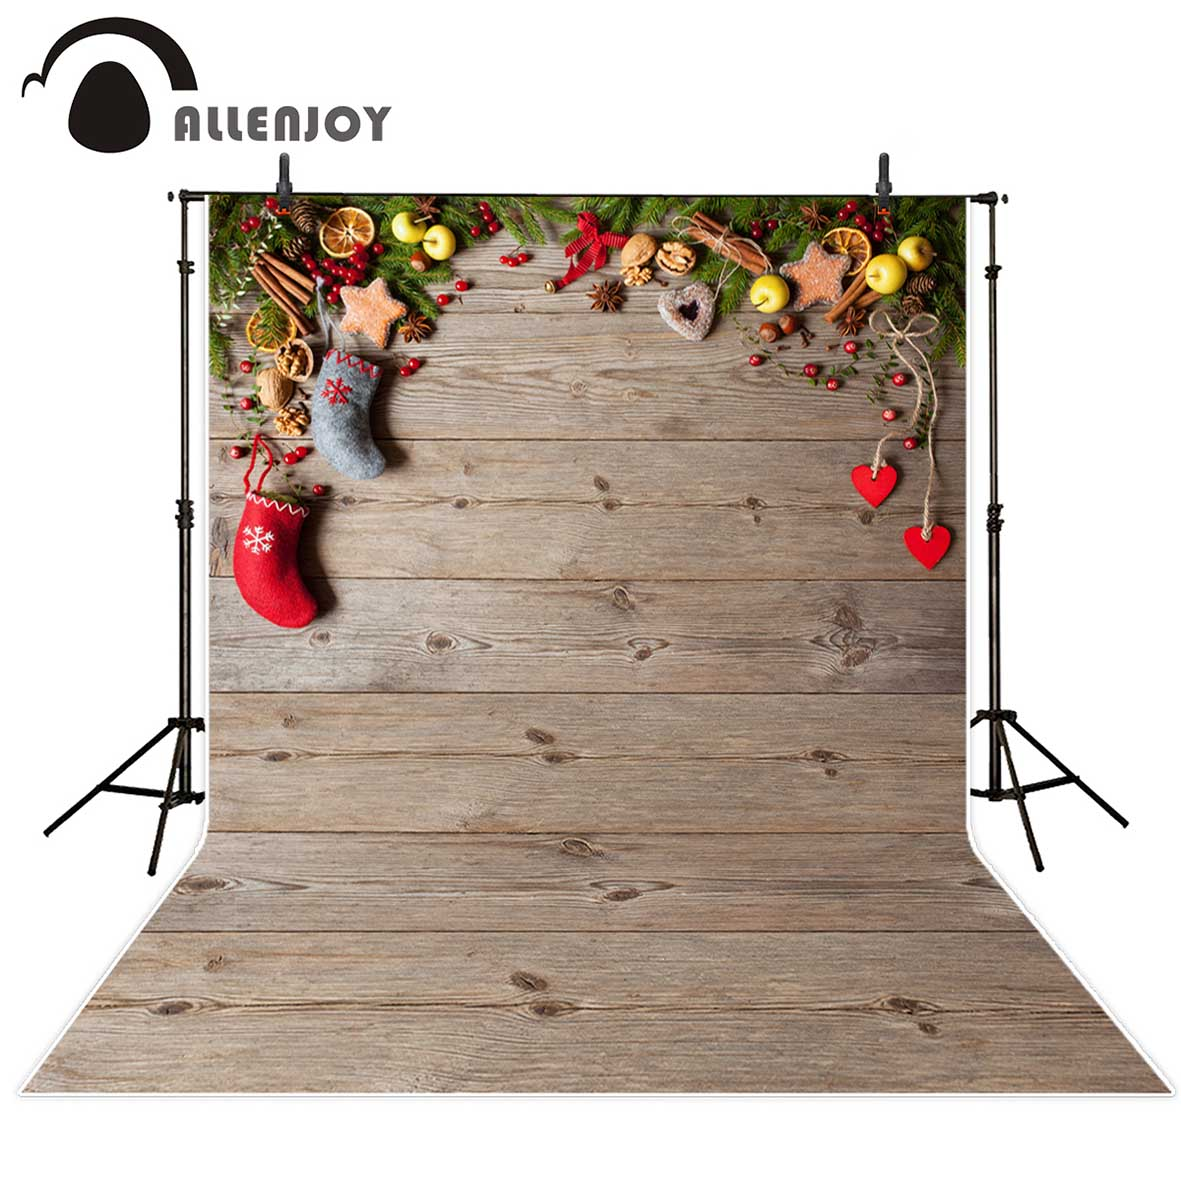 Allenjoy photographic background Christmas stocking wood hearts lemon backdrop photocall photobooth photo studio